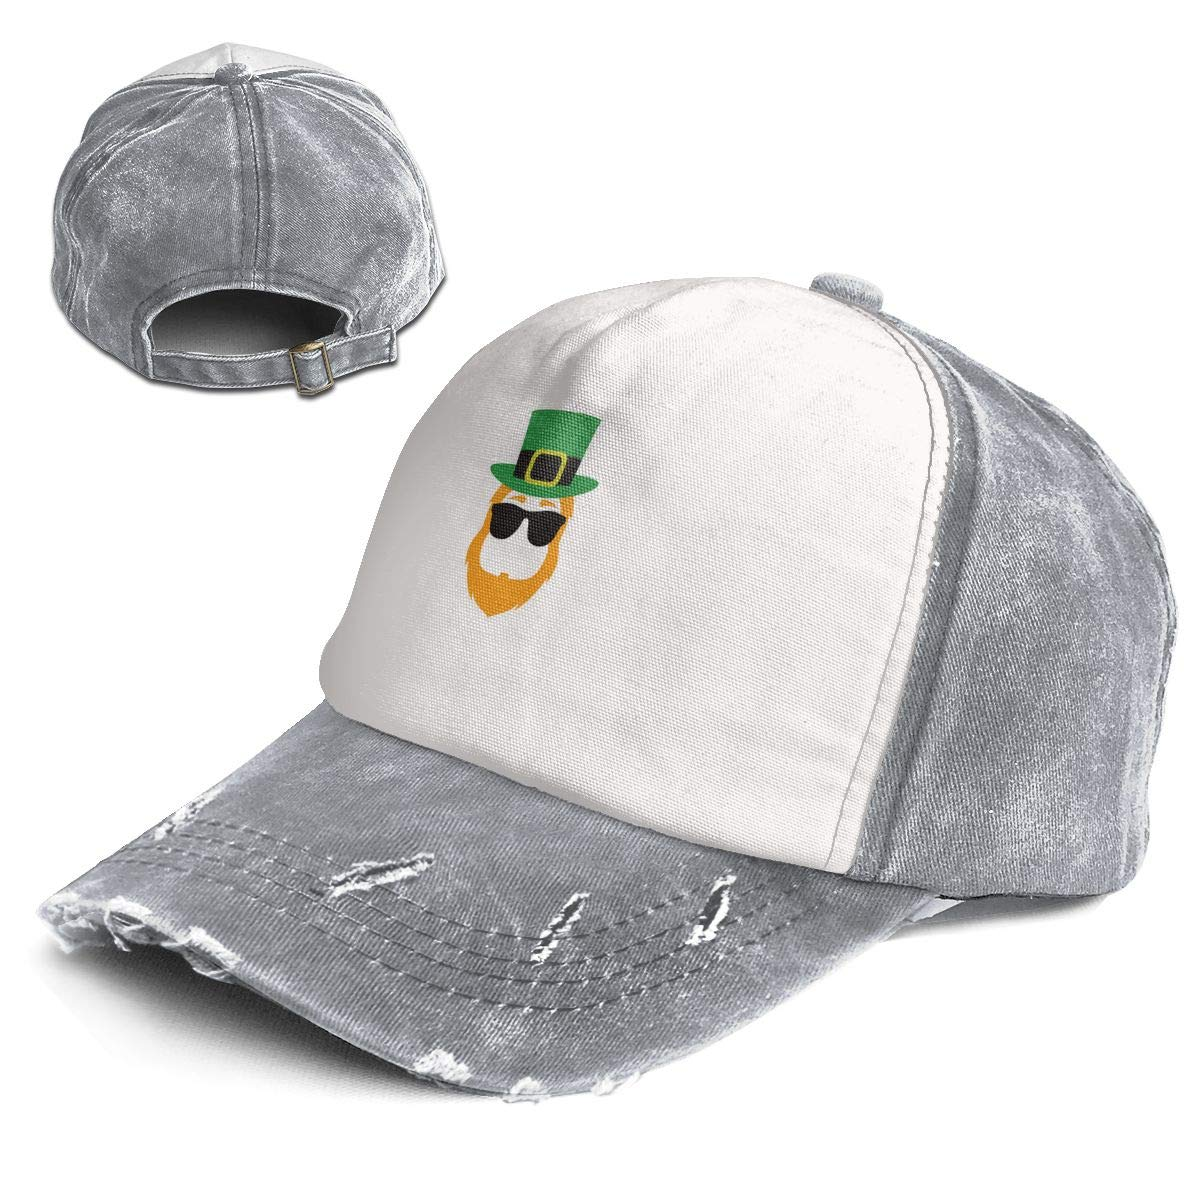 St Patricks Trend Printing Cowboy Hat Fashion Baseball Cap for Men and Women Black